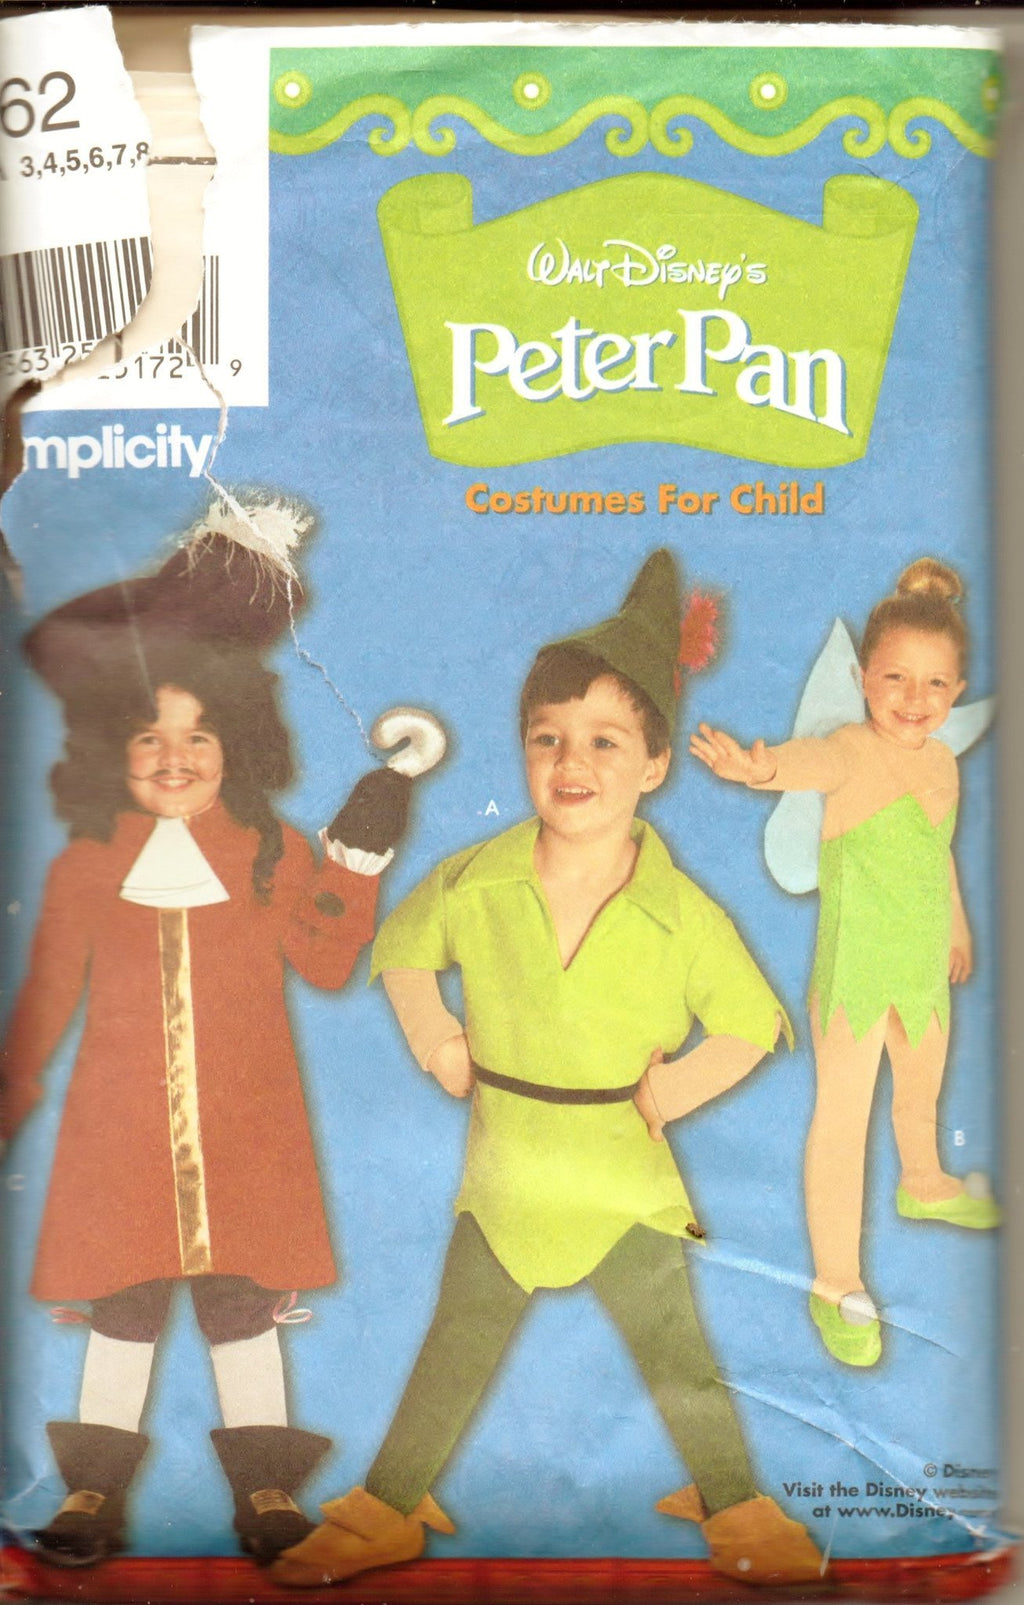 Simplicity 9862 Disney Peter Pan Captain Hook Tinkerbell Halloween Costume Pattern Children Boy Girl - VintageStitching - Vintage Sewing Patterns